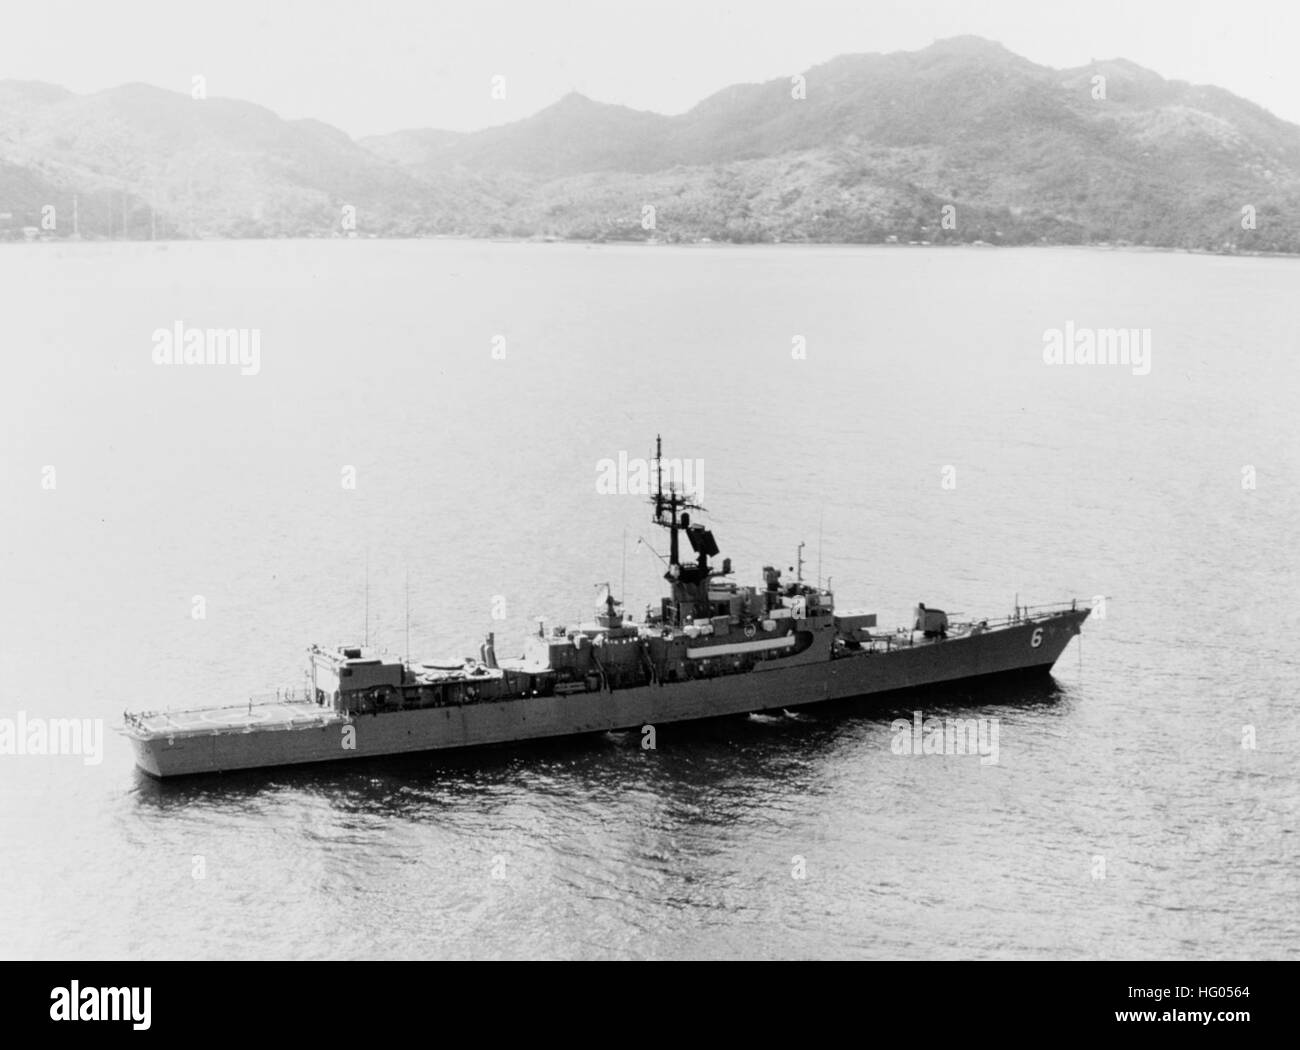 USS Julius A. Furer (FFG-6) off Victoria, Seychelles Islands, on 13 January 1978 - Stock Image